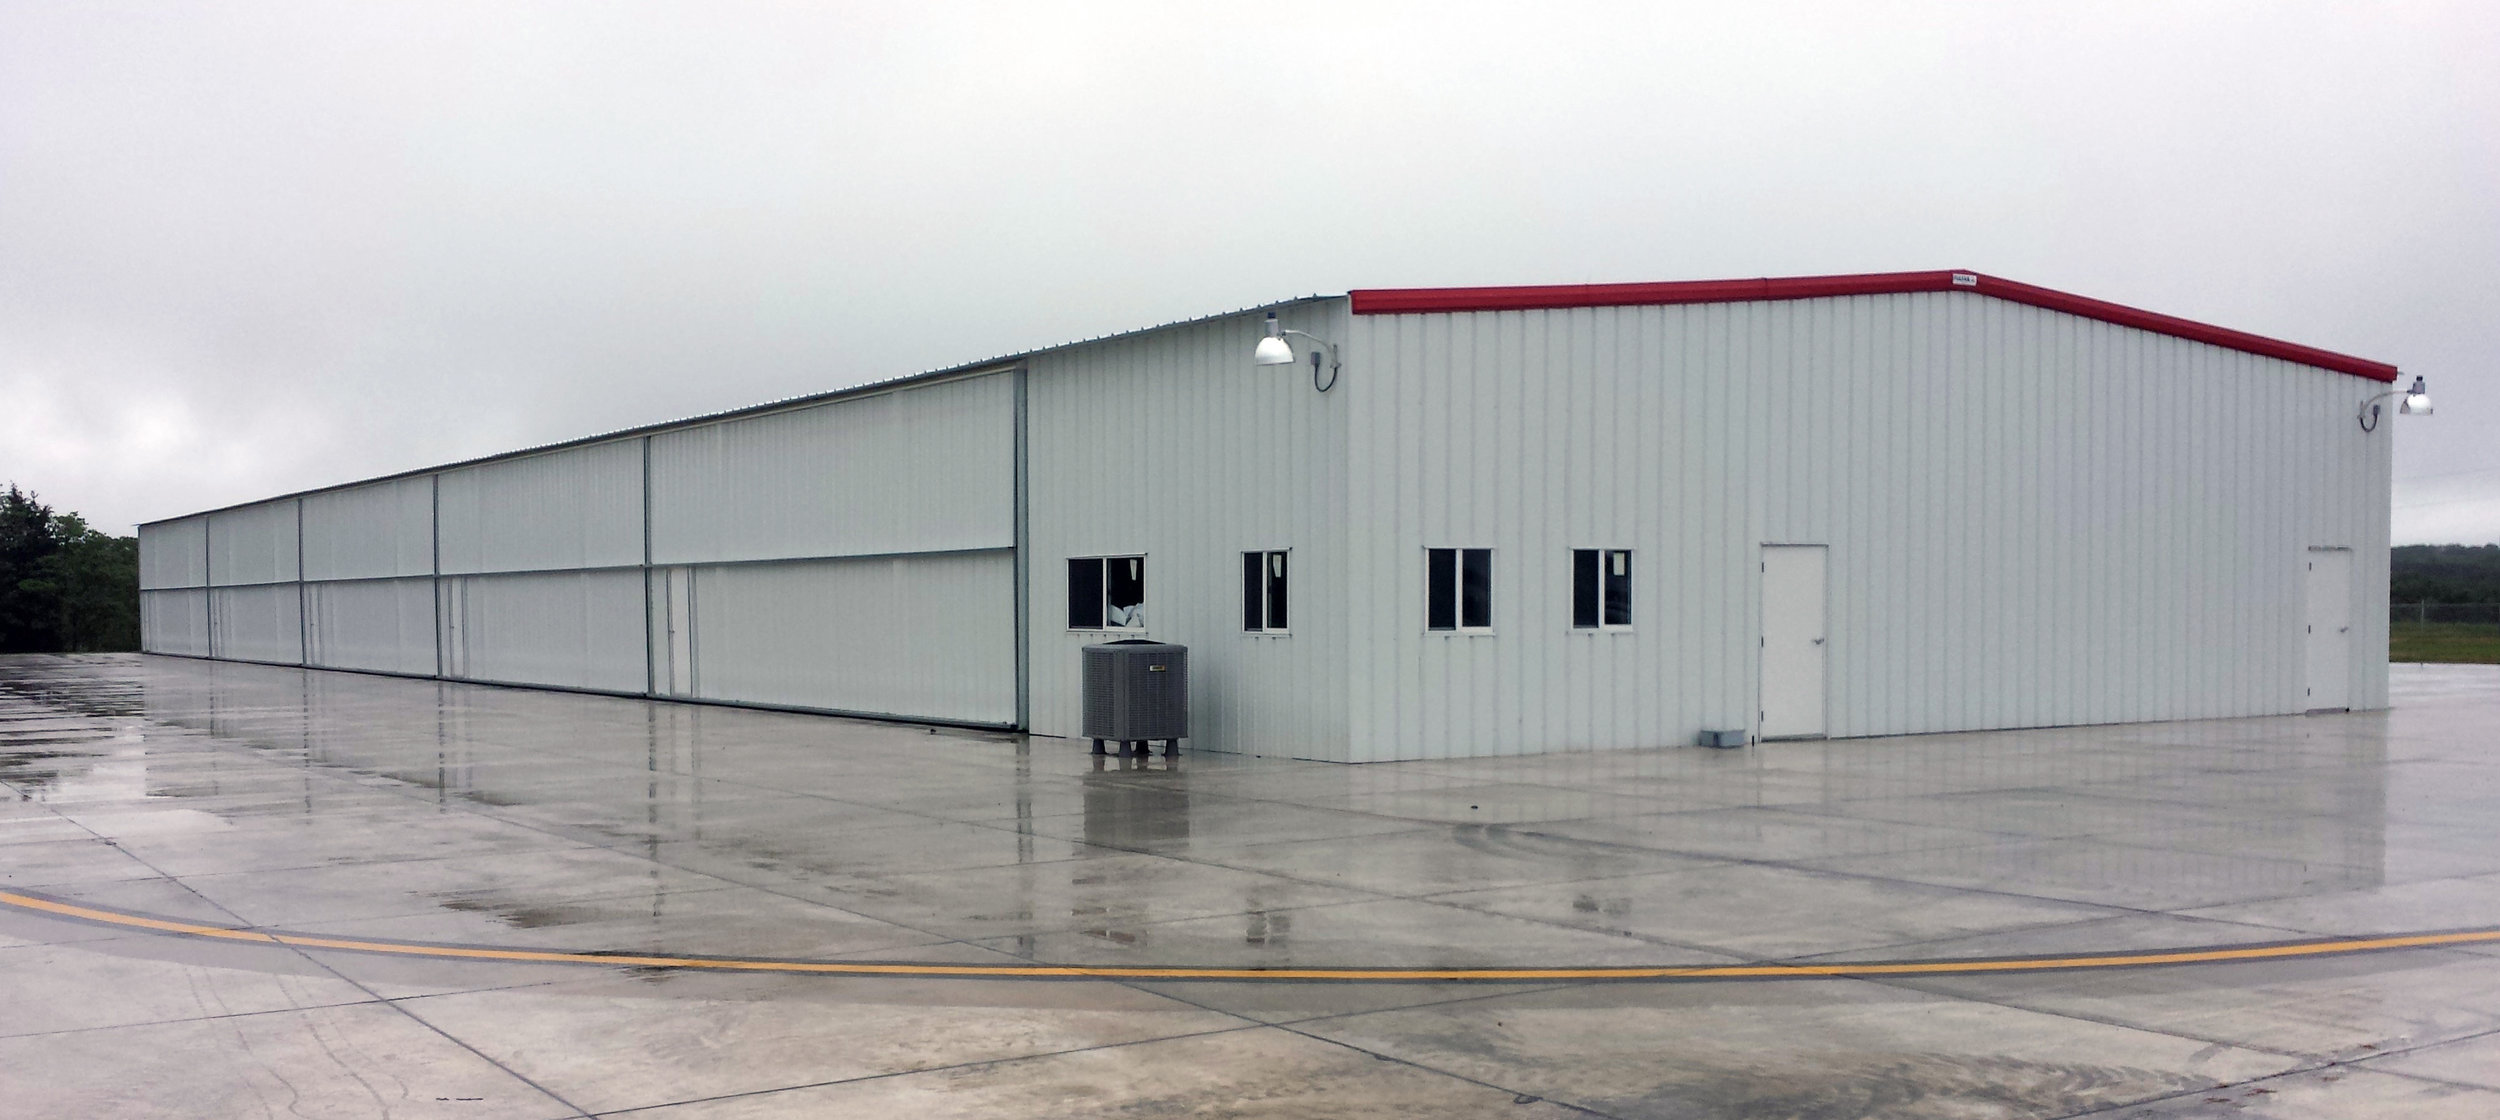 Houston Memorial Airport: New Hangar and Taxiway Extension